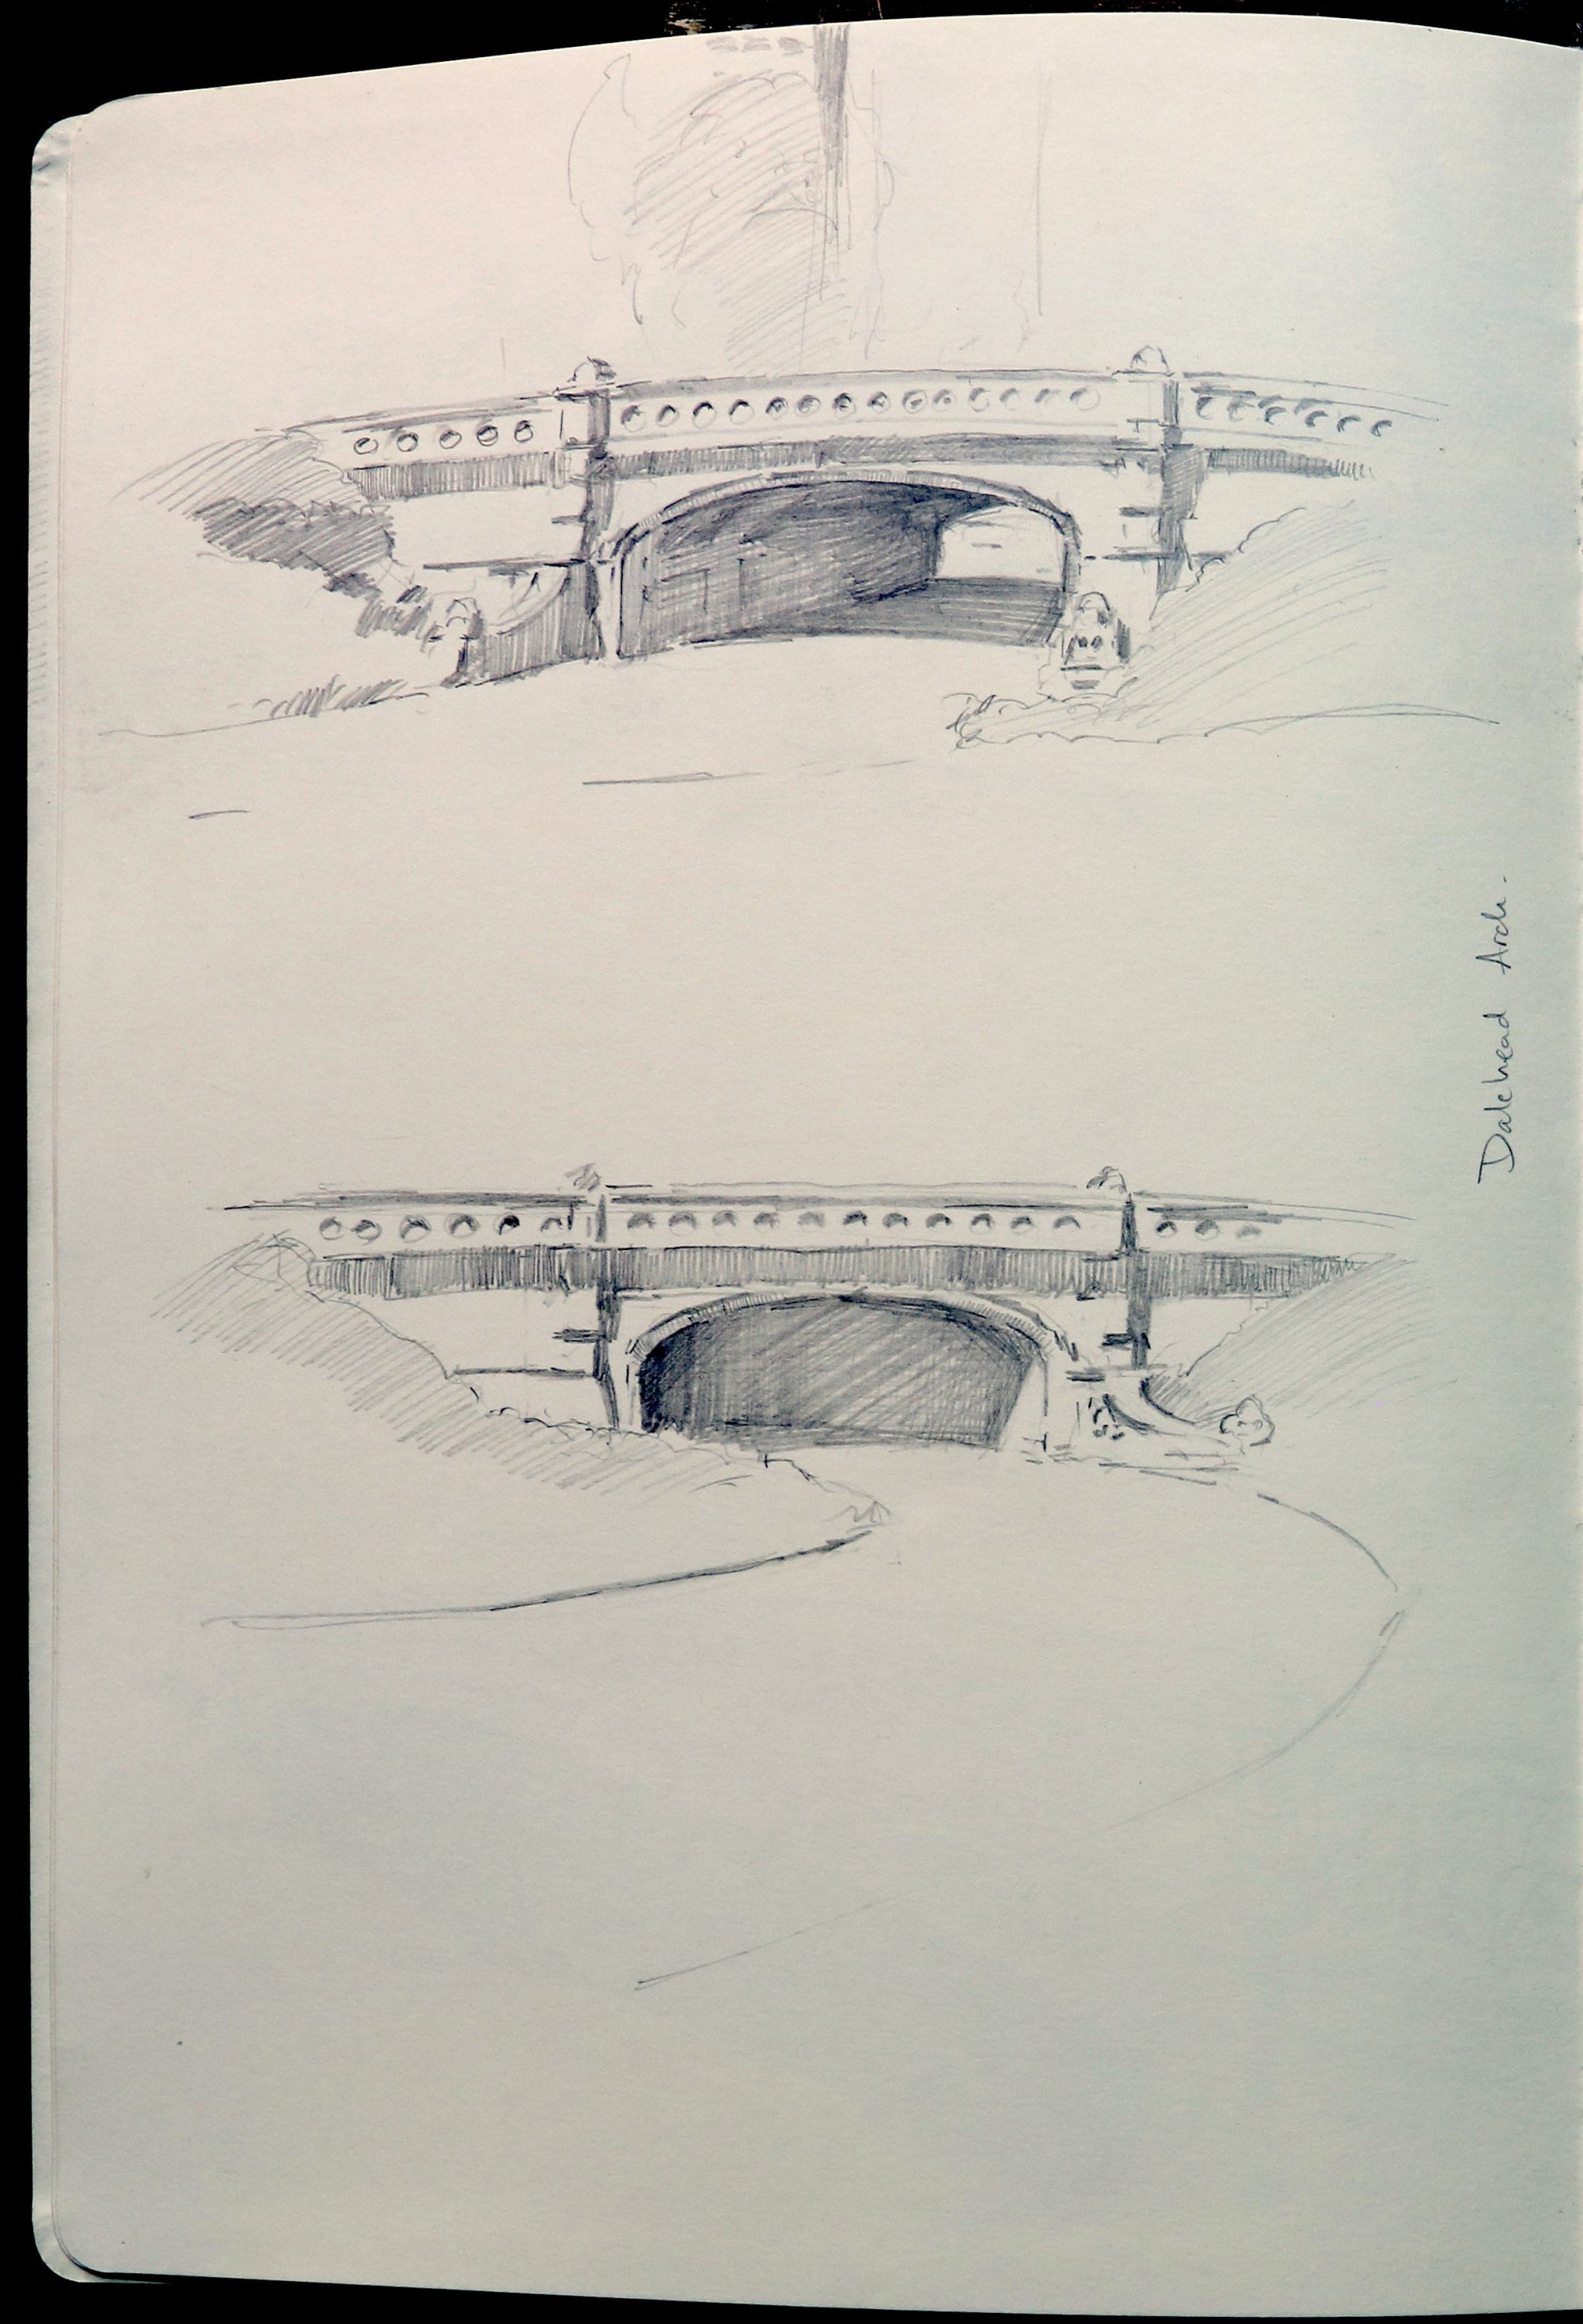 hight resolution of dalewood arch built 1860 1862 by calvert vaux stone arch vehicle bridge